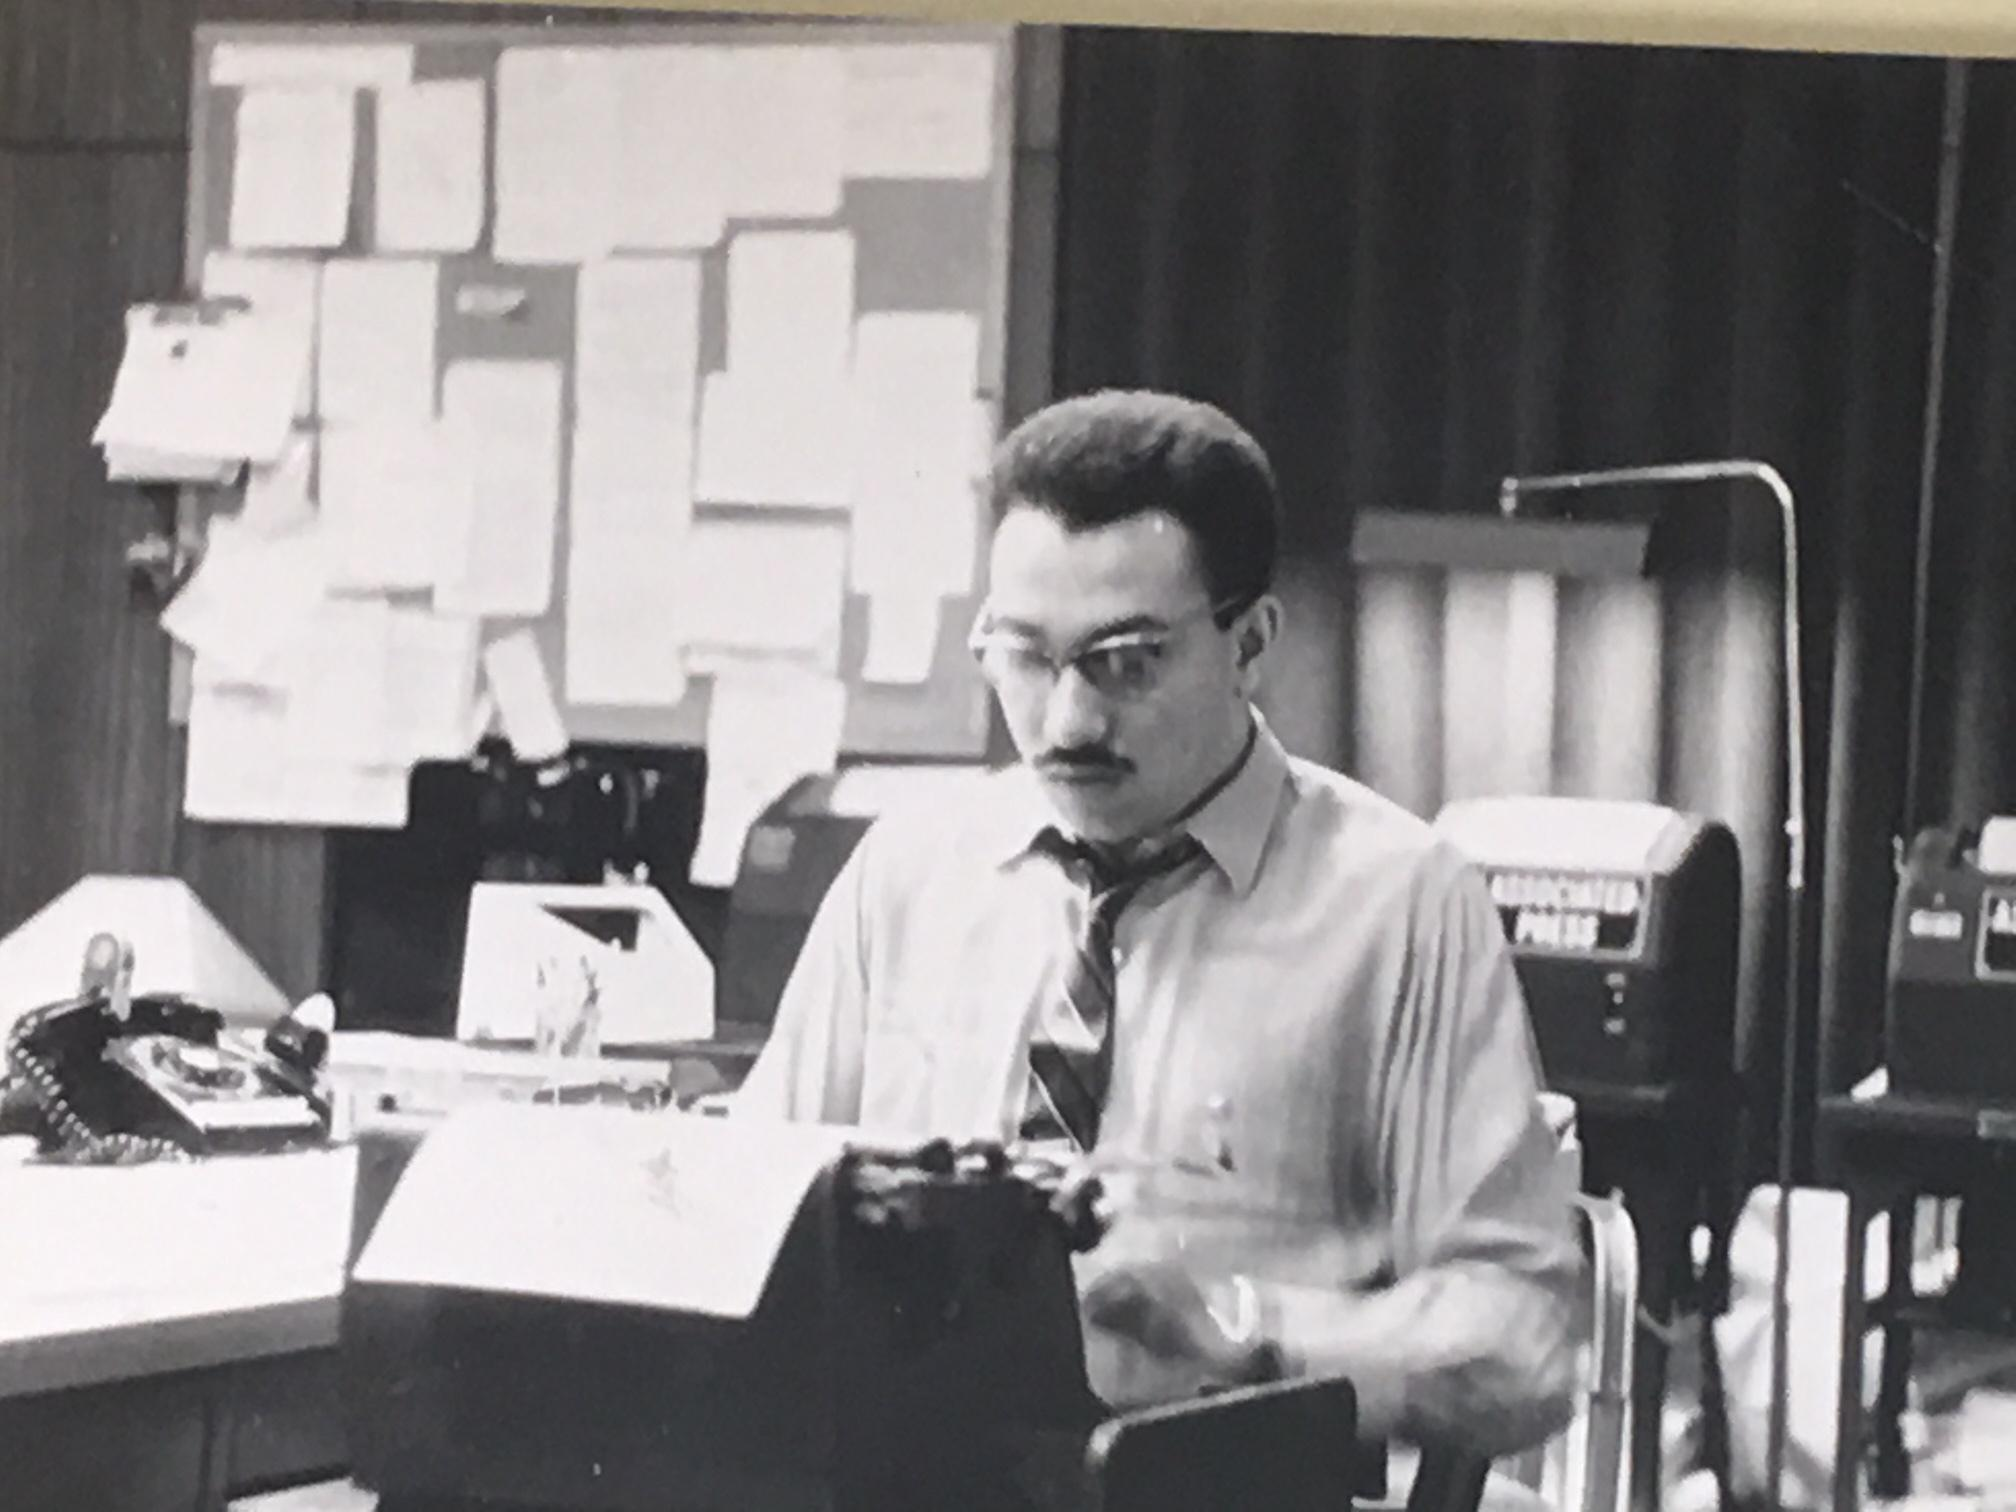 Richard Gibson working as a journalist for CBS Radio News.